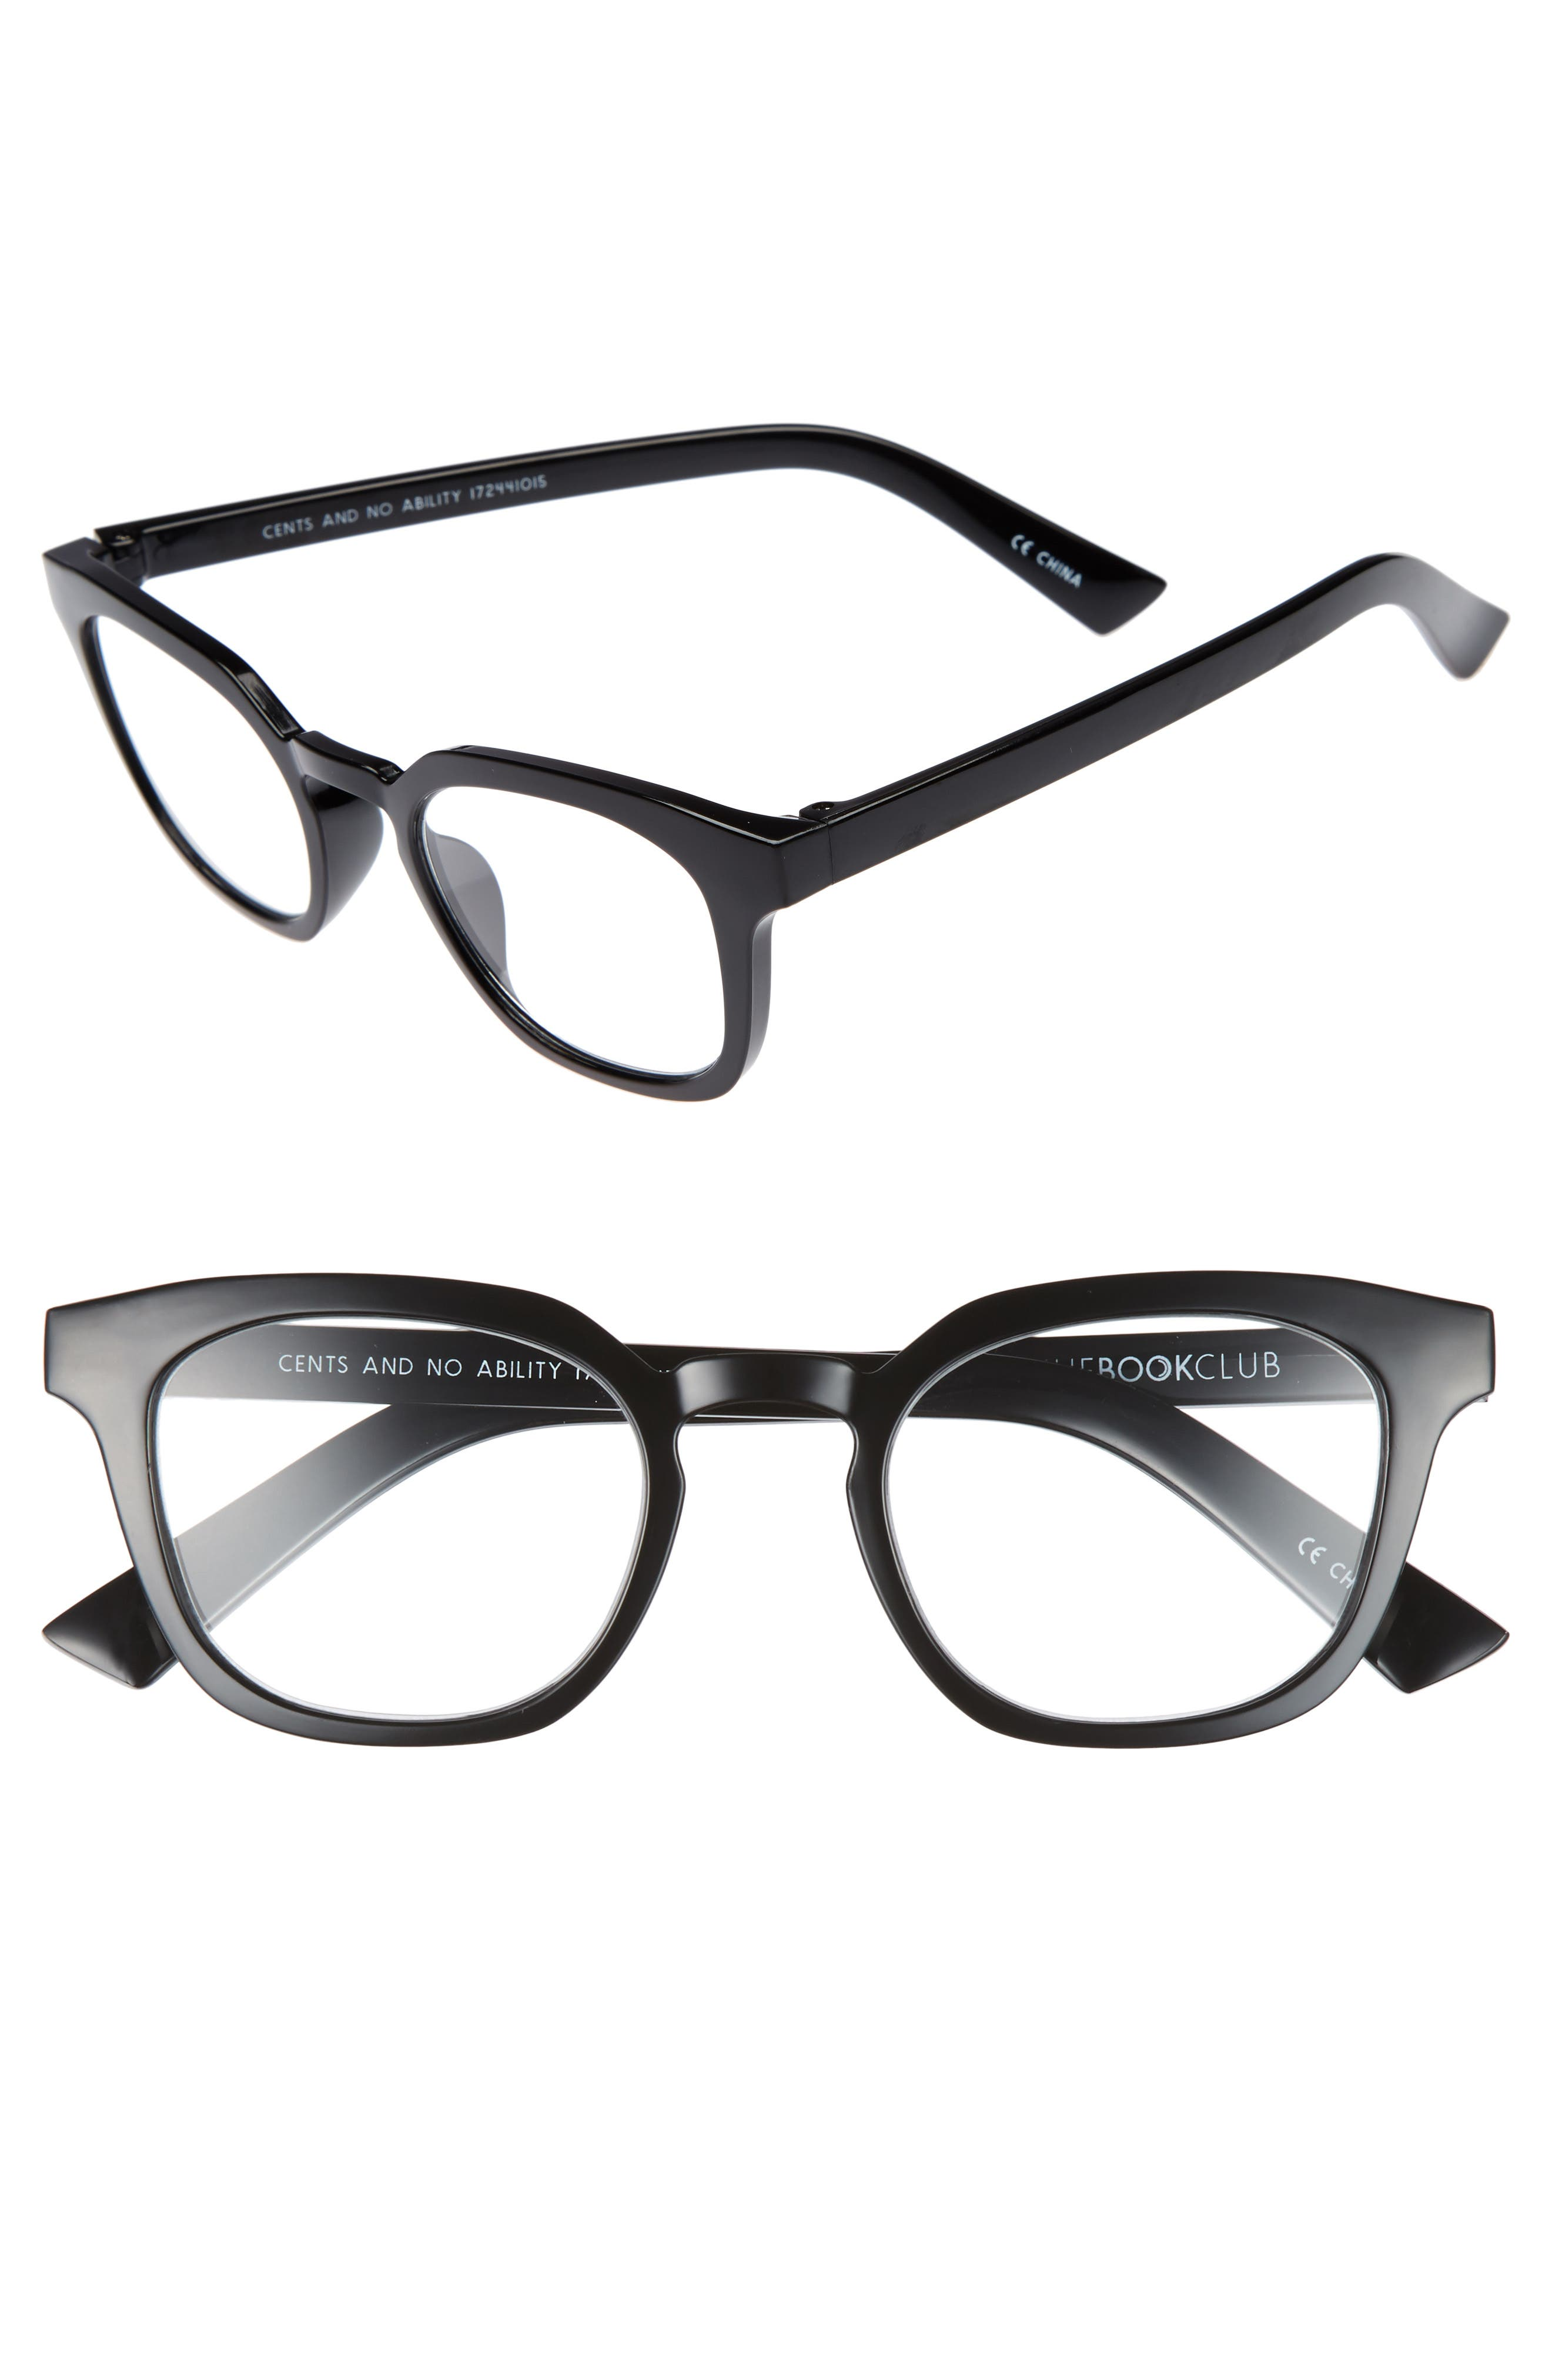 Cents and No Ability 48mm Reading Glasses,                         Main,                         color, Black Marker